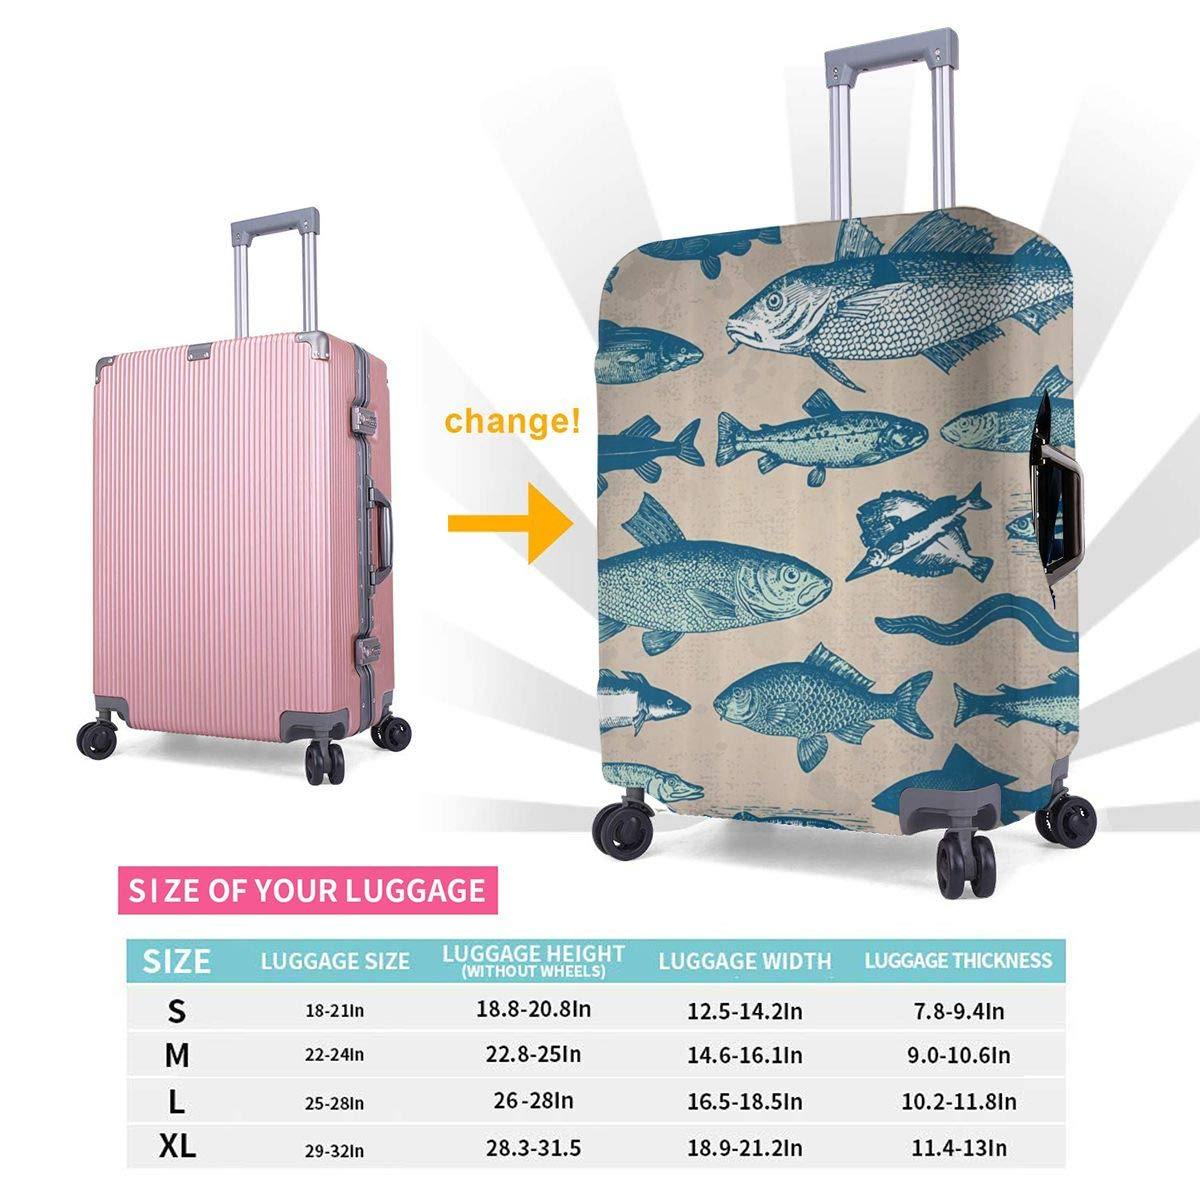 JHNDKJS Nautical Coastal Travel Luggage Cover Baggage Suitcase Protector Fit for 12-18 Inch Luggage